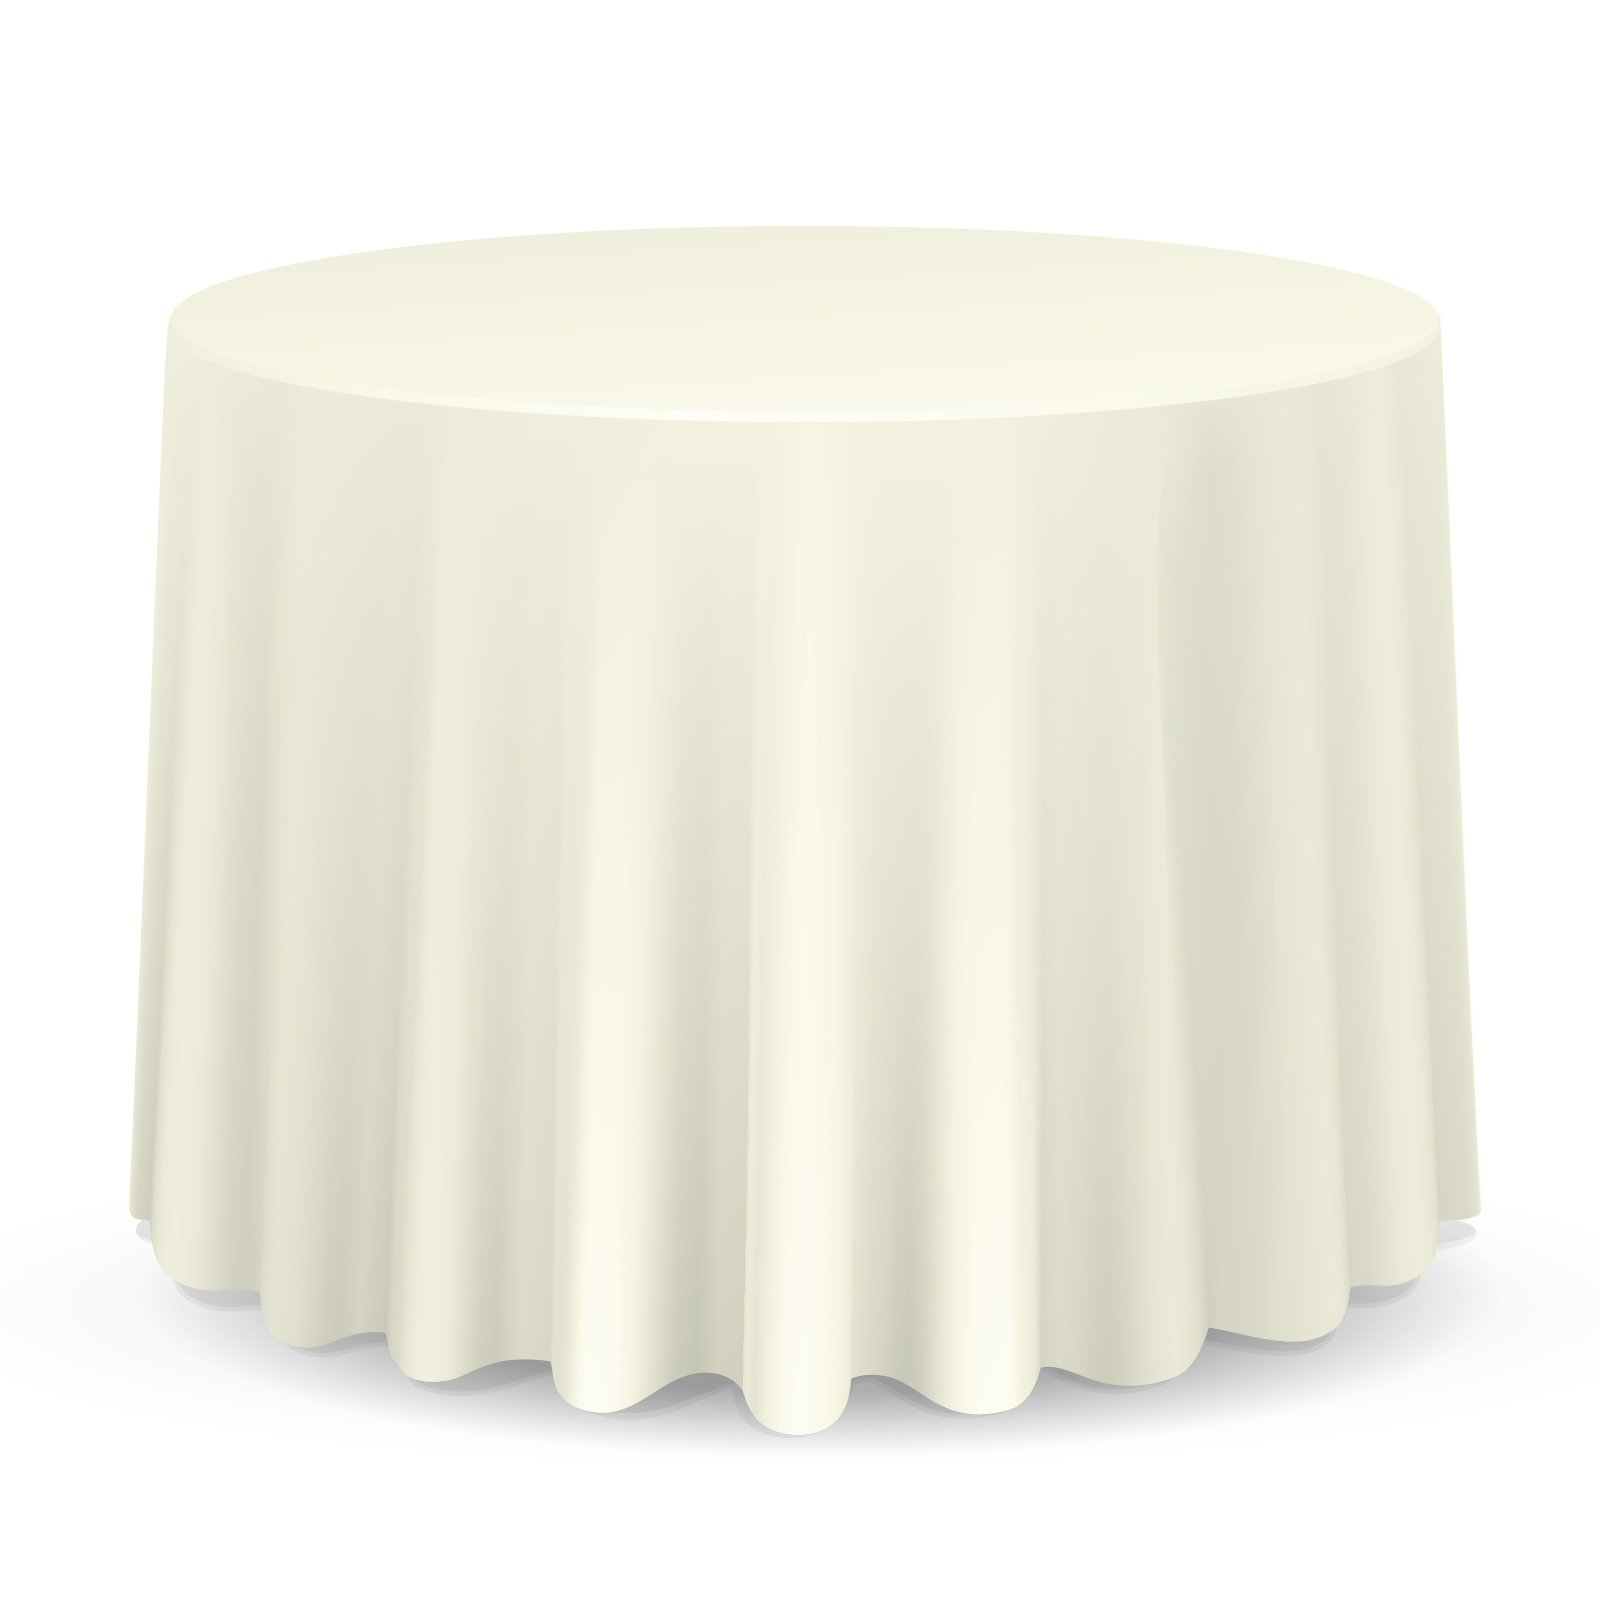 Lann's Linens - 10 pcs 132 in. Round PREMIUM WEIGHT Seamless Tablecloths - for Wedding or Party Use - Ivory